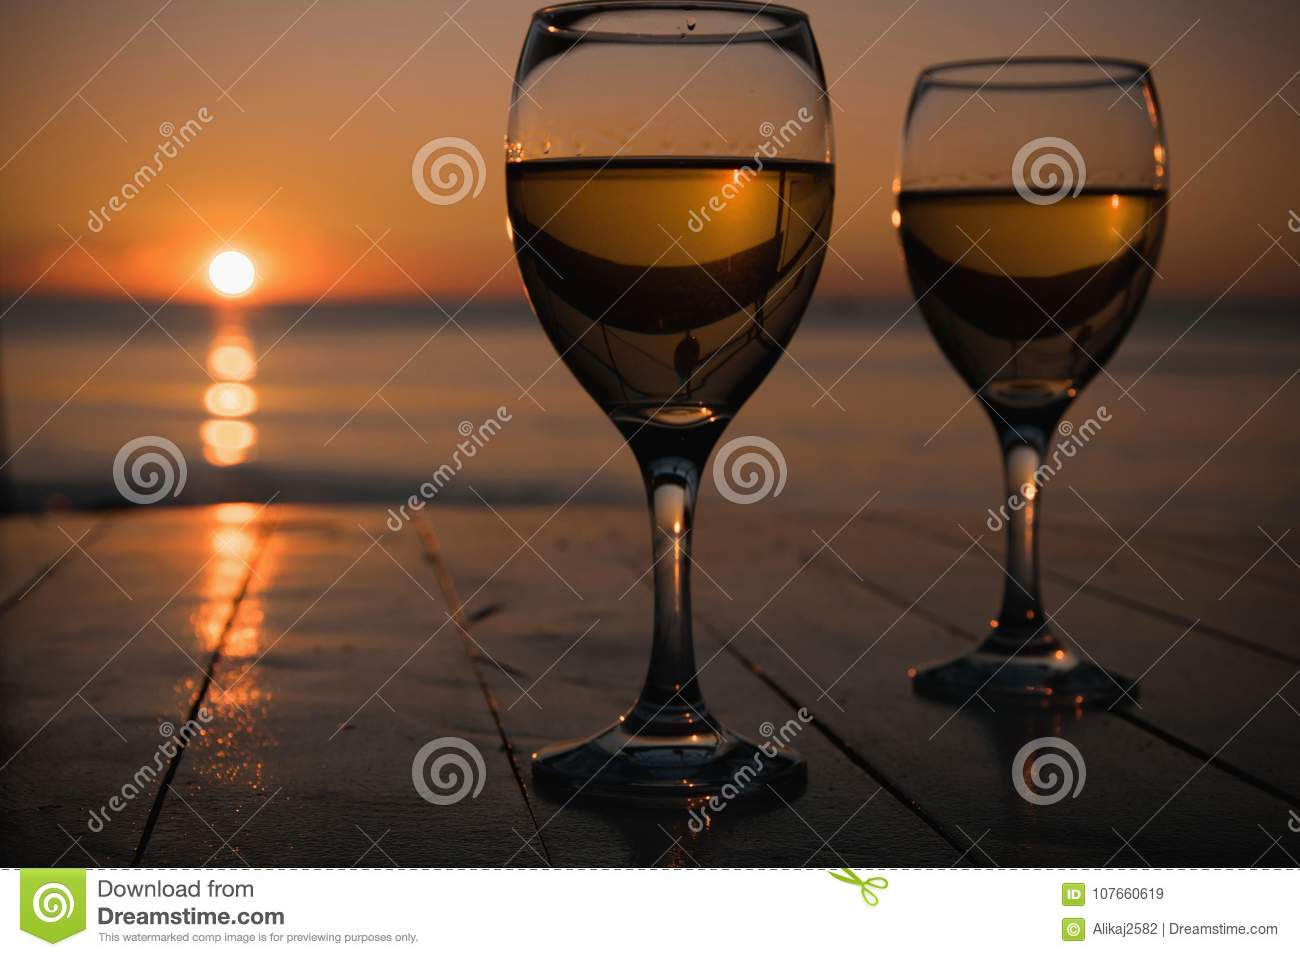 Romantic outdoor activity. Two glasses with white wine in an outdoor restaurant with sunset sea view, relaxation concept for two